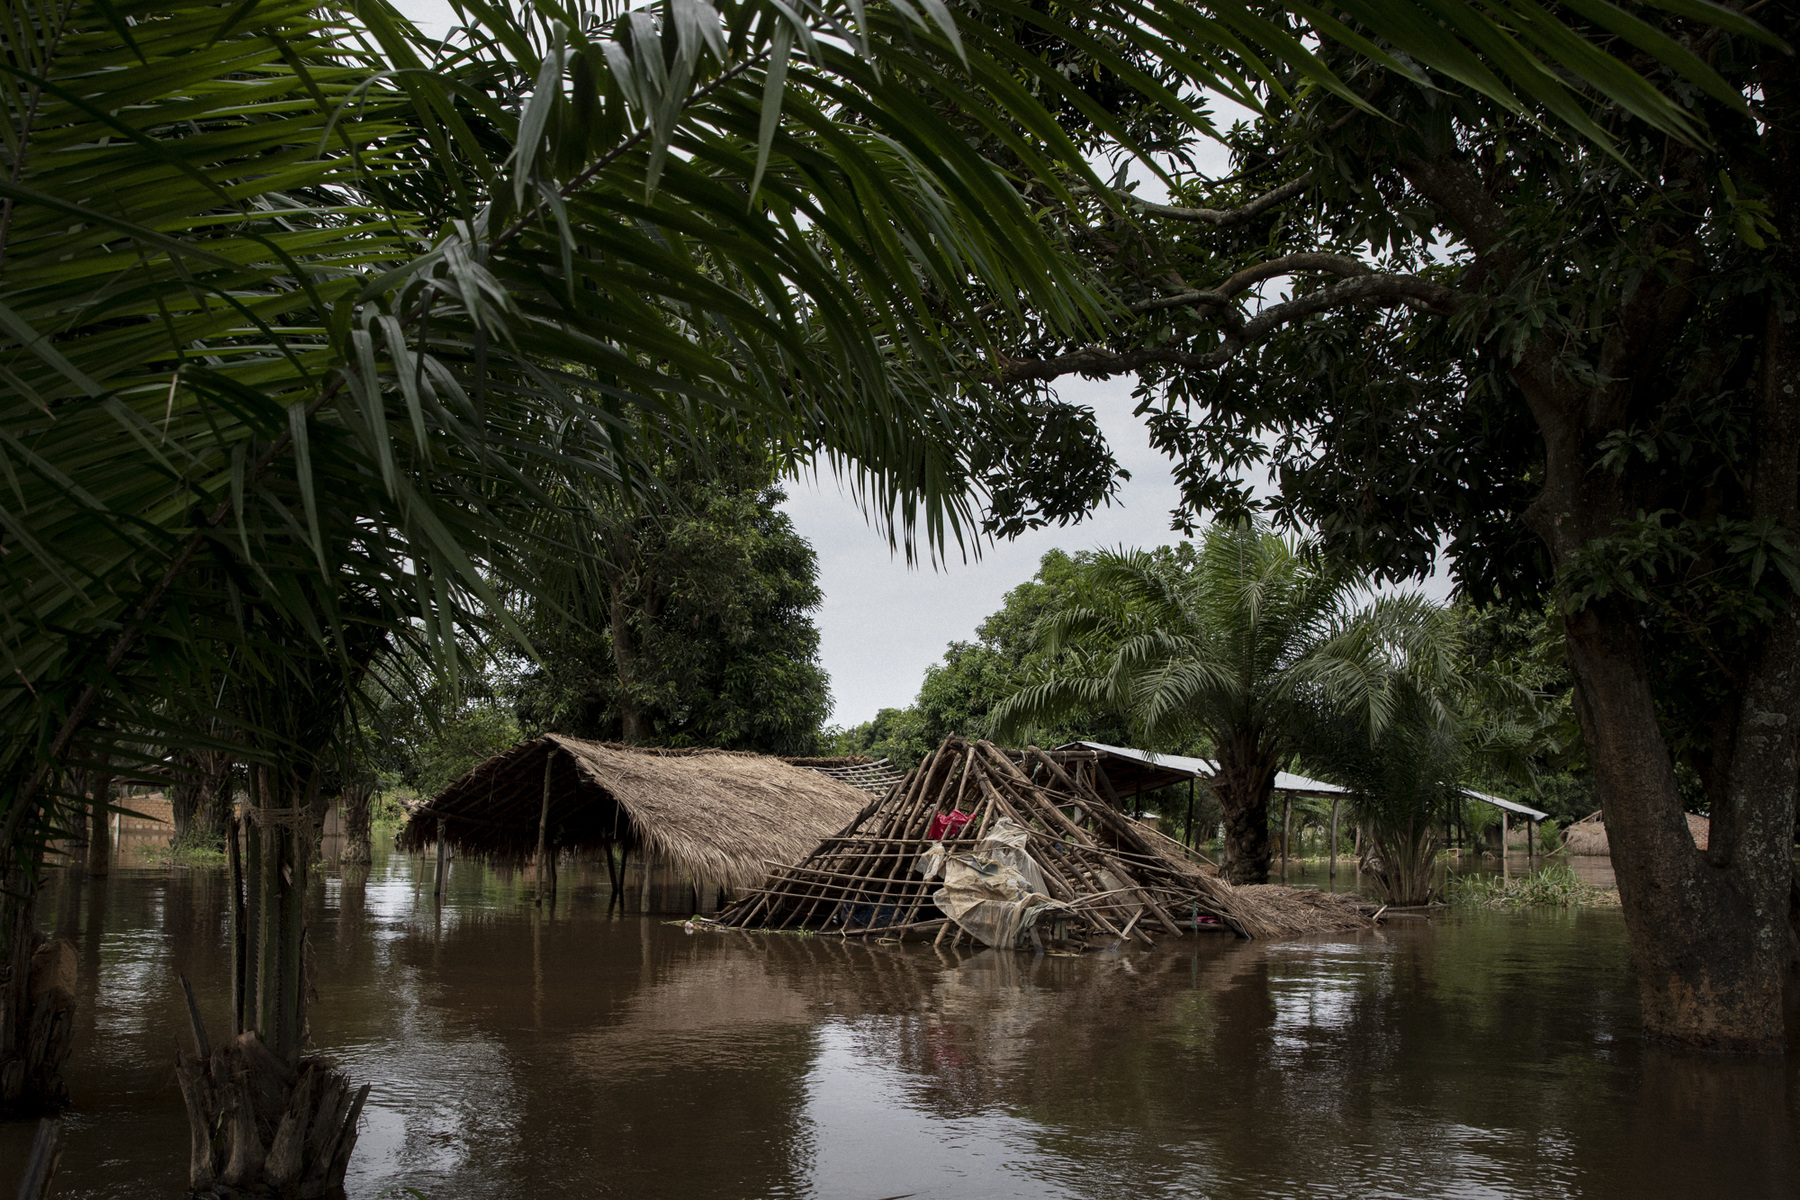 Adrienne Surprenant - On the Île aux Singes, located in the middle of Ubangui River, all the population has fled. Two weeks after the beginning of the floods, the mud-bricks walls of the houses have melted, and many structures fell. November 4, 2019. Bangui, the Central African Republic.